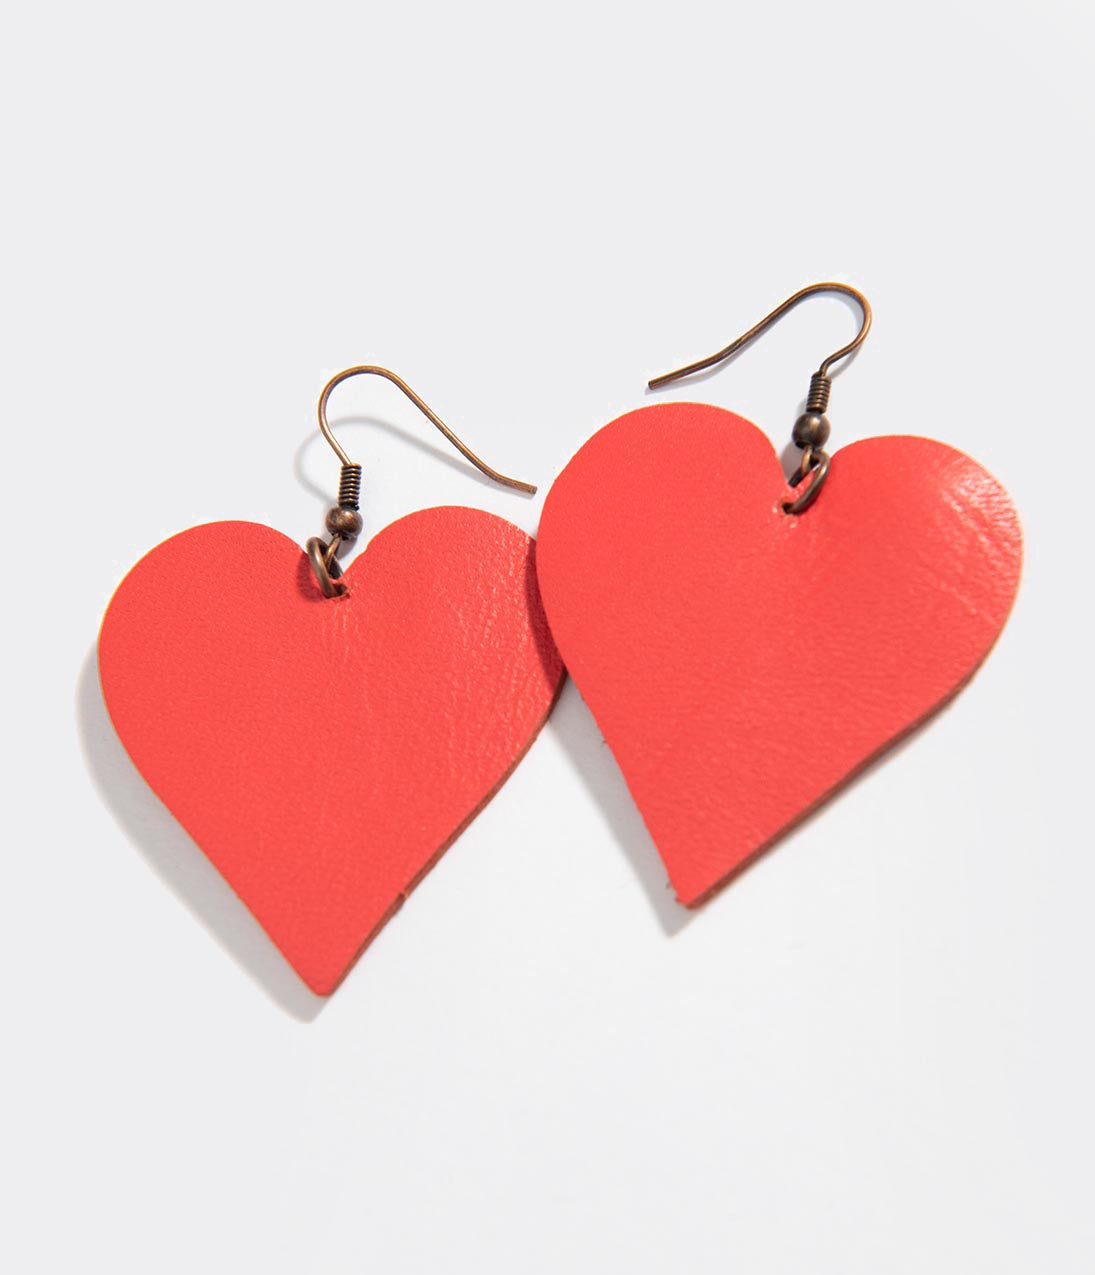 Vintage Christmas Dress | Party Dresses | Night Out Outfits Red Leatherette Heart Earrings $18.00 AT vintagedancer.com